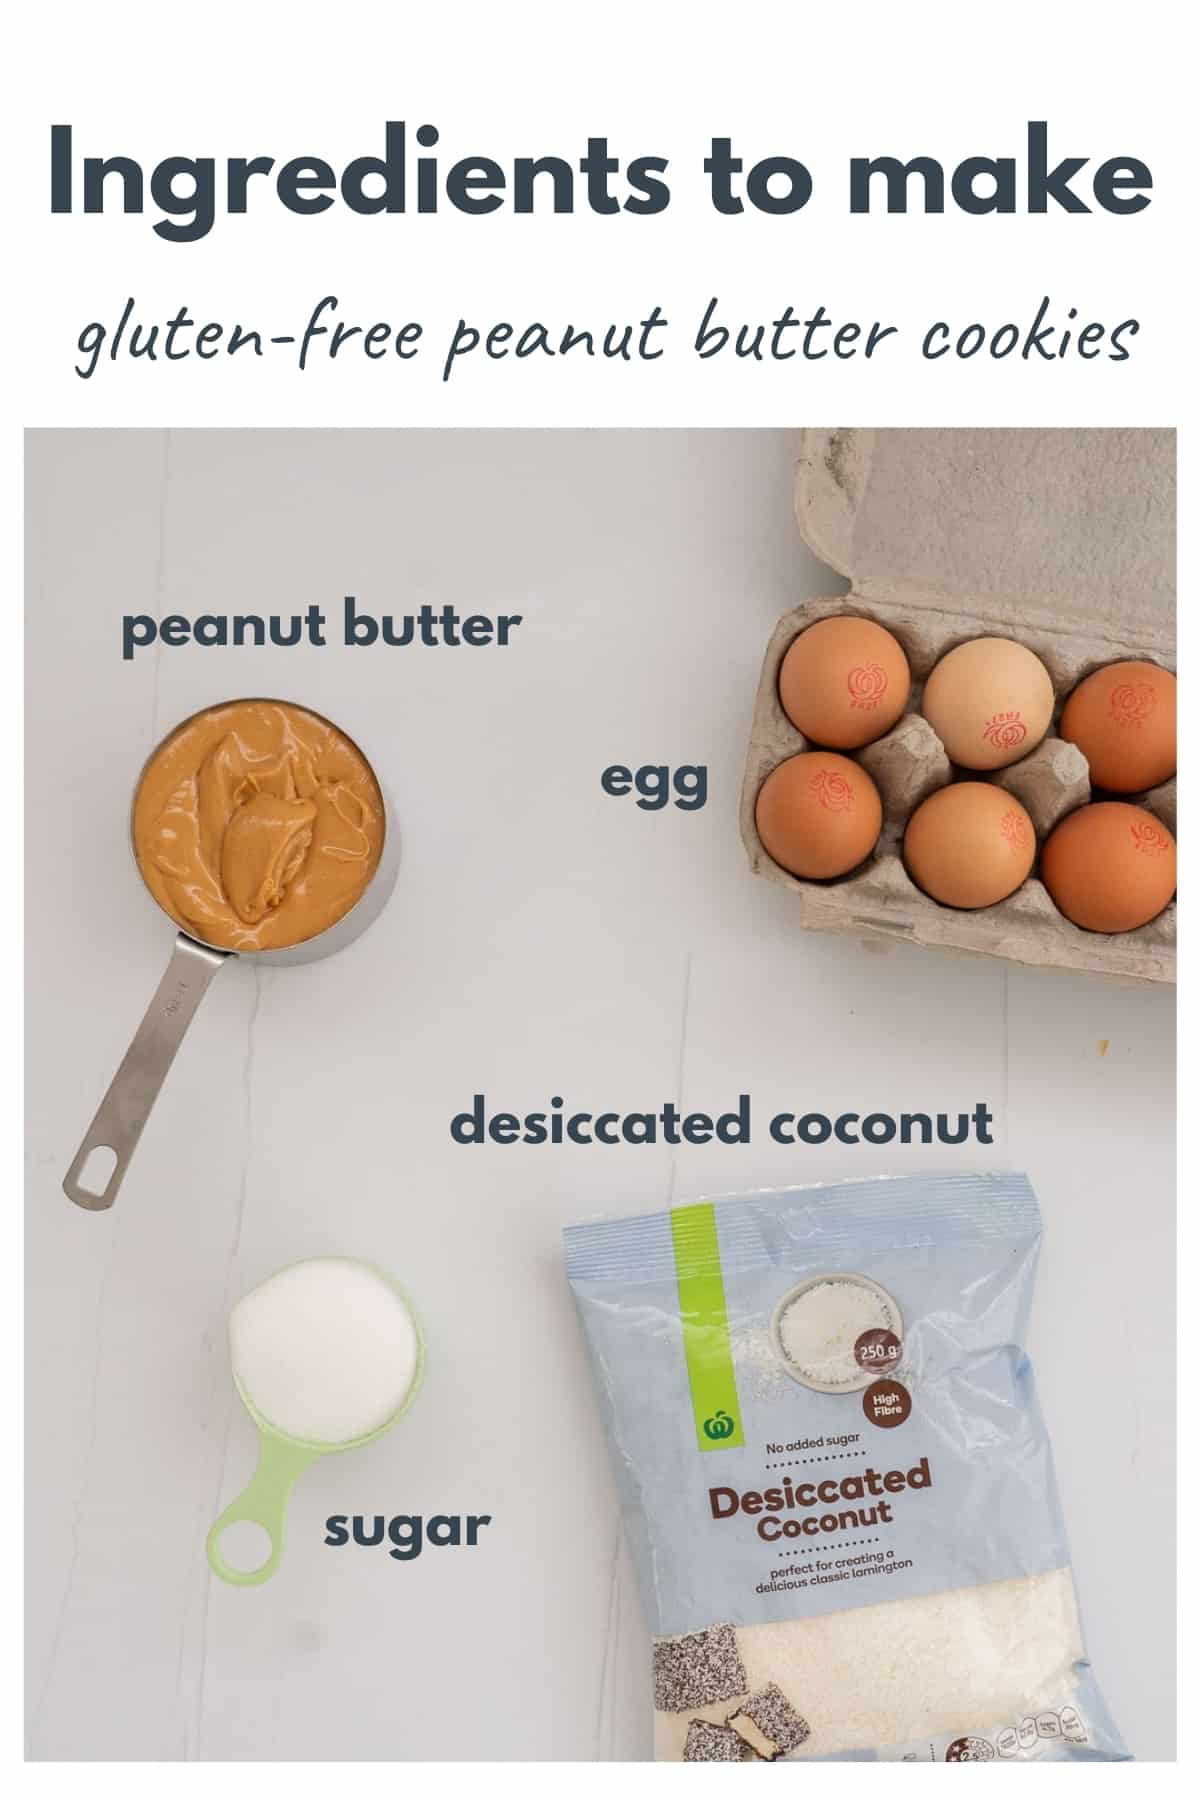 Ingredients for gluten free peanut butter cookies laid out on a bench with text overlay.